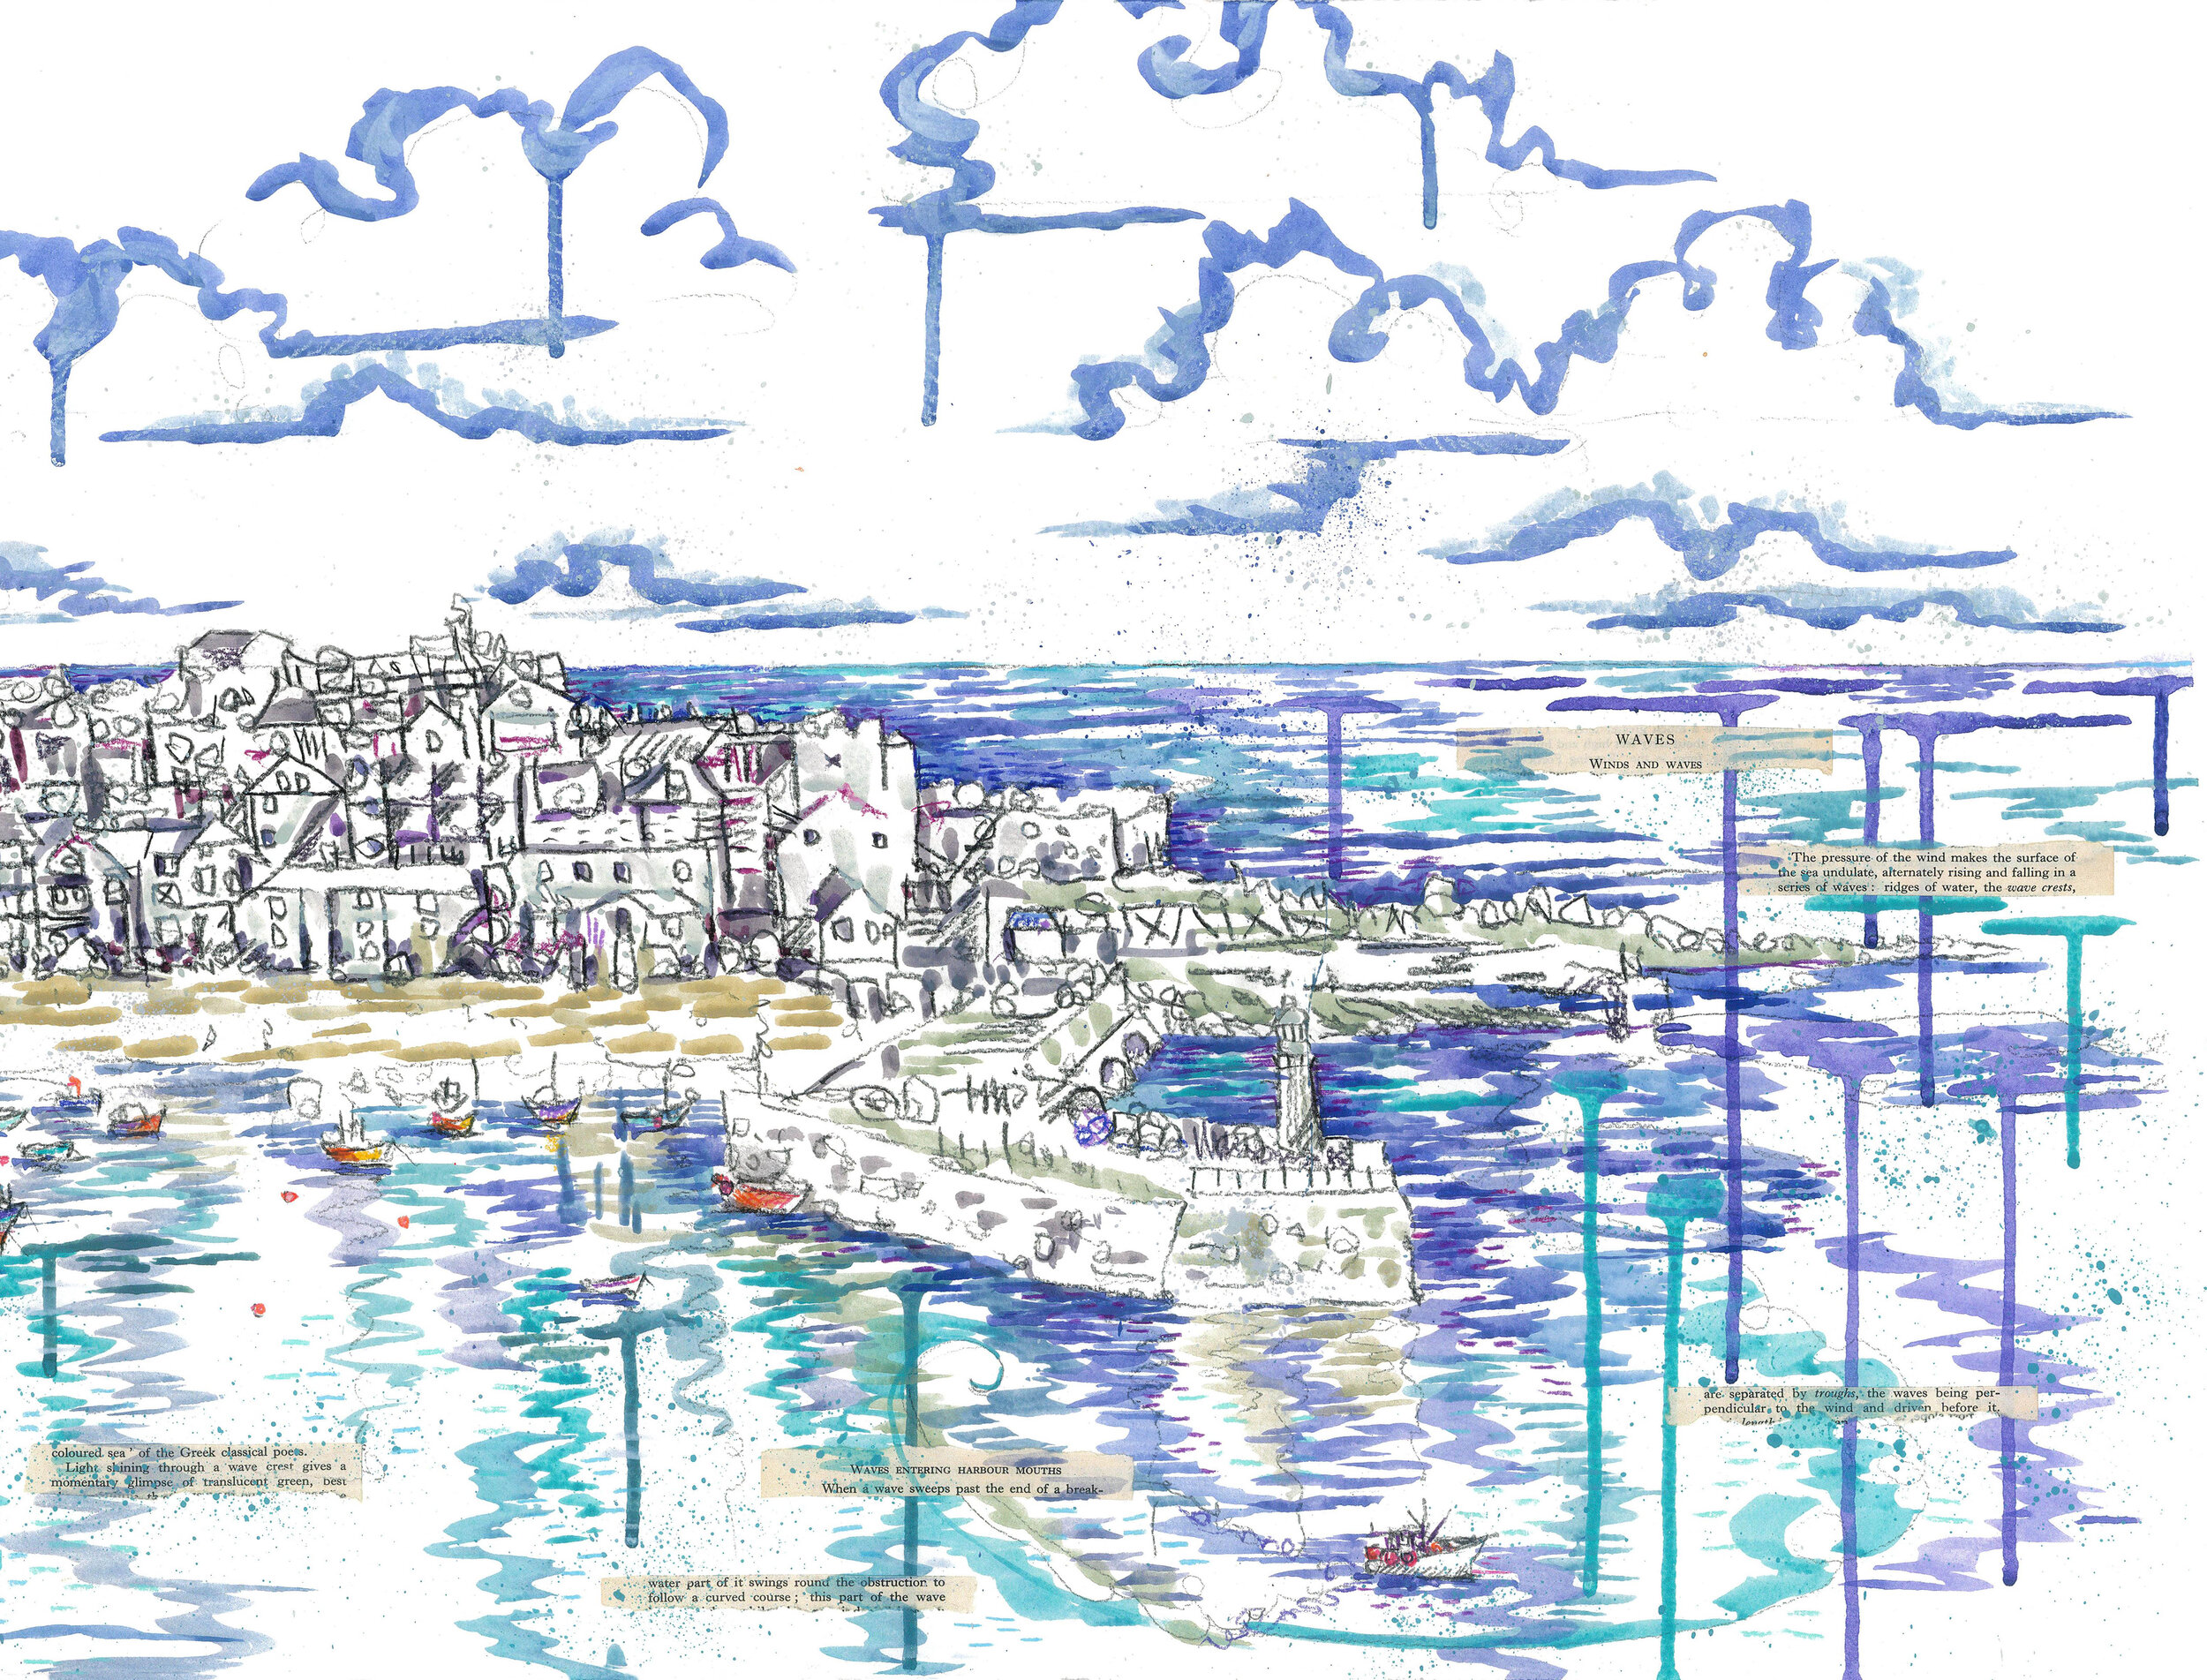 St_Ives_7(Paolo)section.jpg